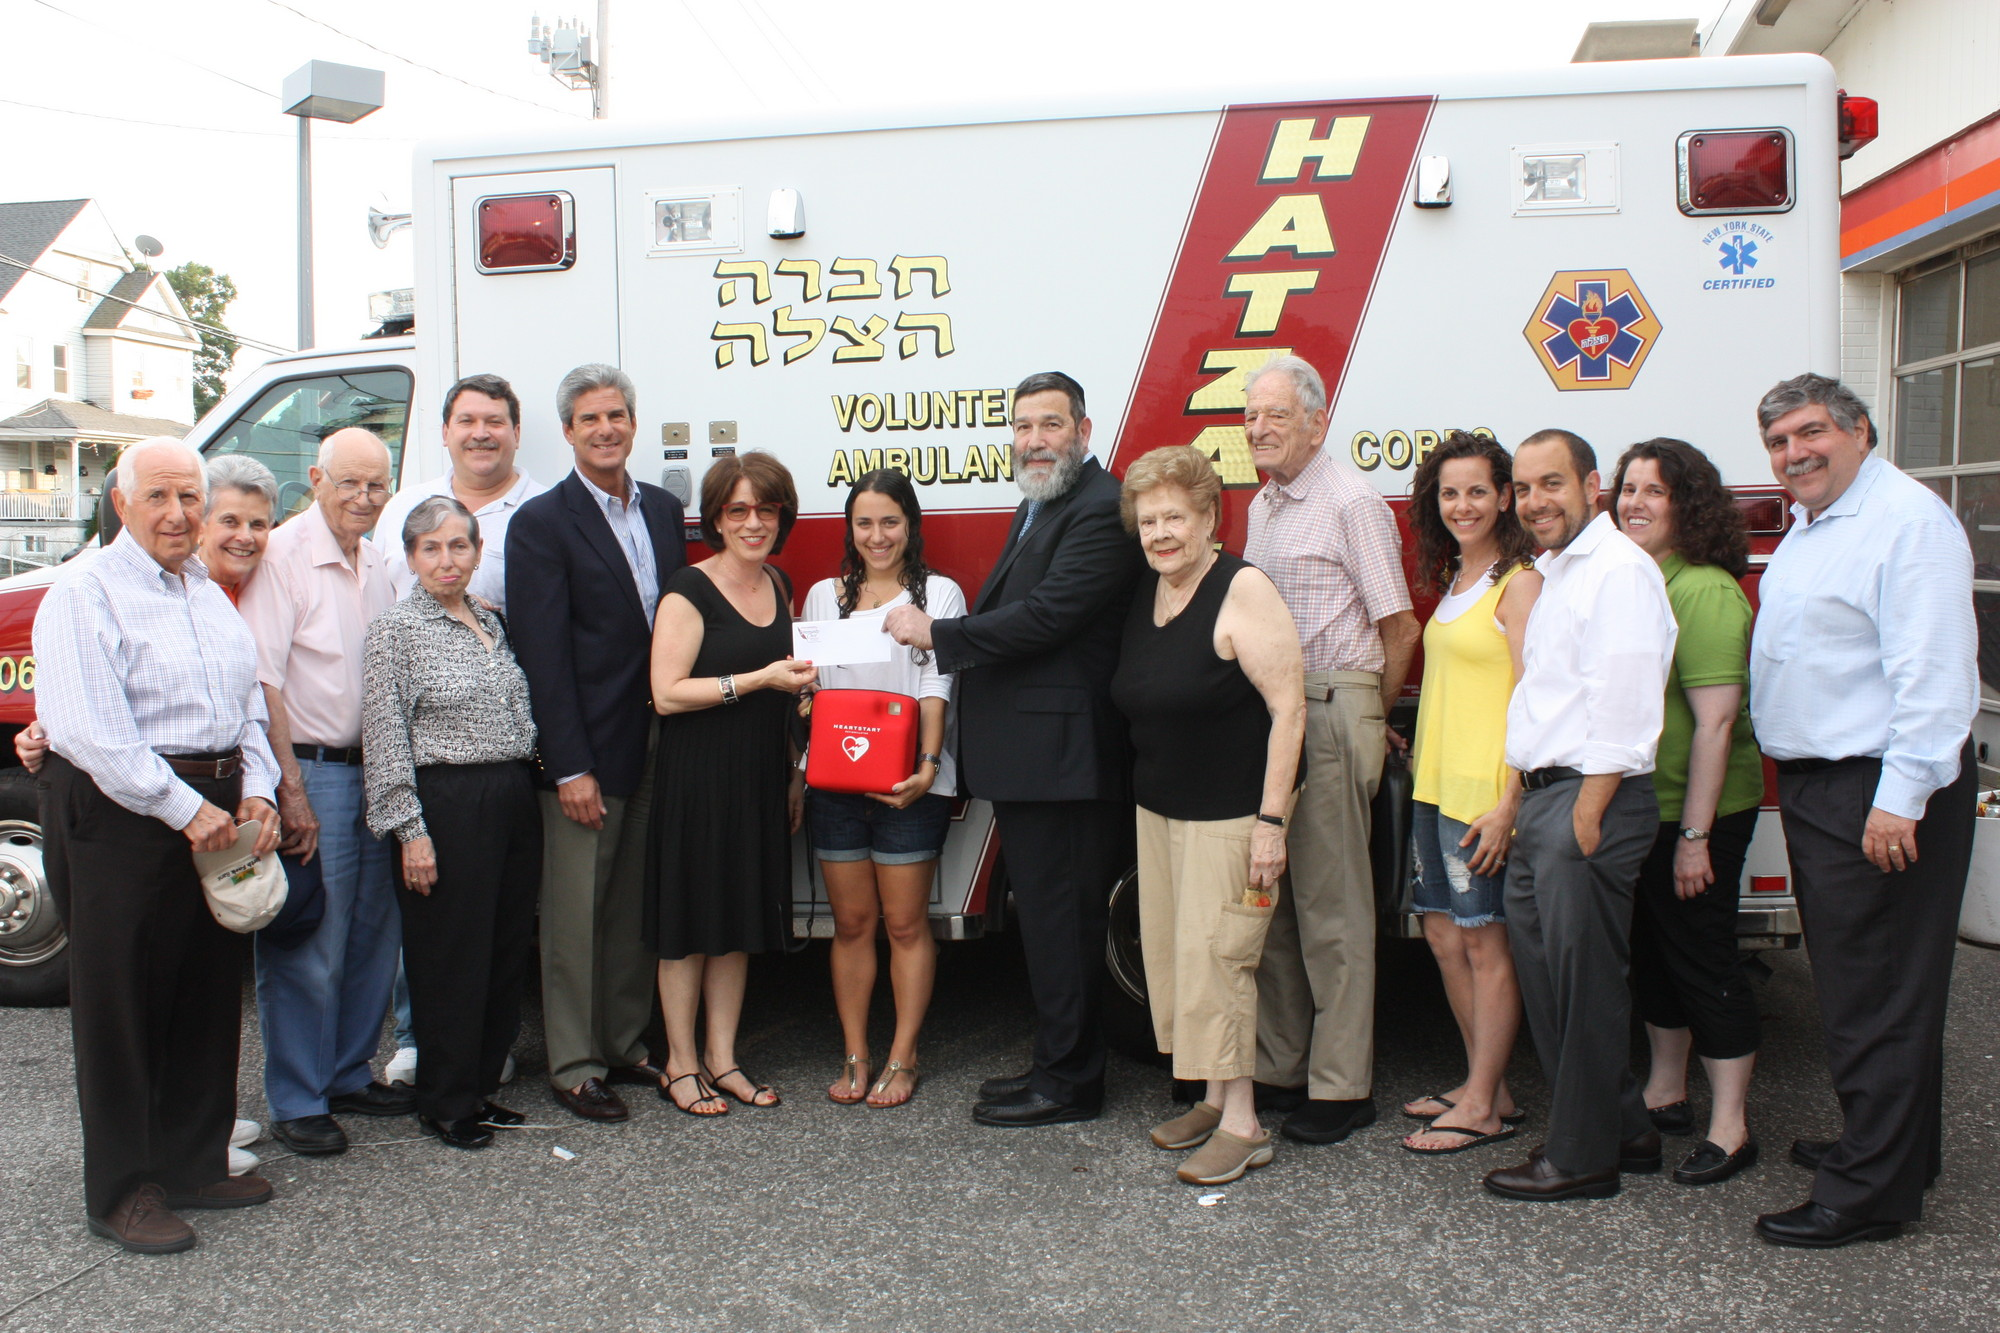 Five Towns Community Chest raised $1,800 to buy an automated external defibrillator and donated it to Hatzalah in memory of Wooodmere resident Eric Matza. Arielle Matza, Matza's daughter, held the AED.